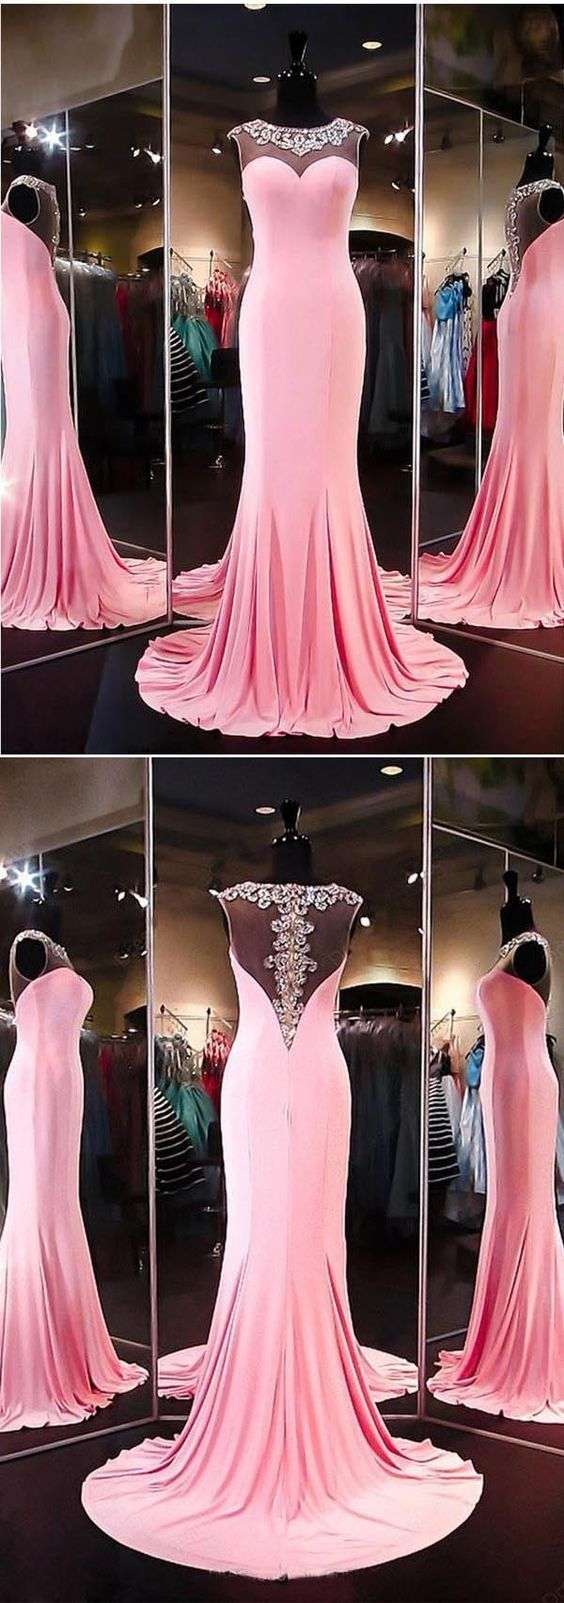 High quality aline mermaid satin pink long prom dress evening dress